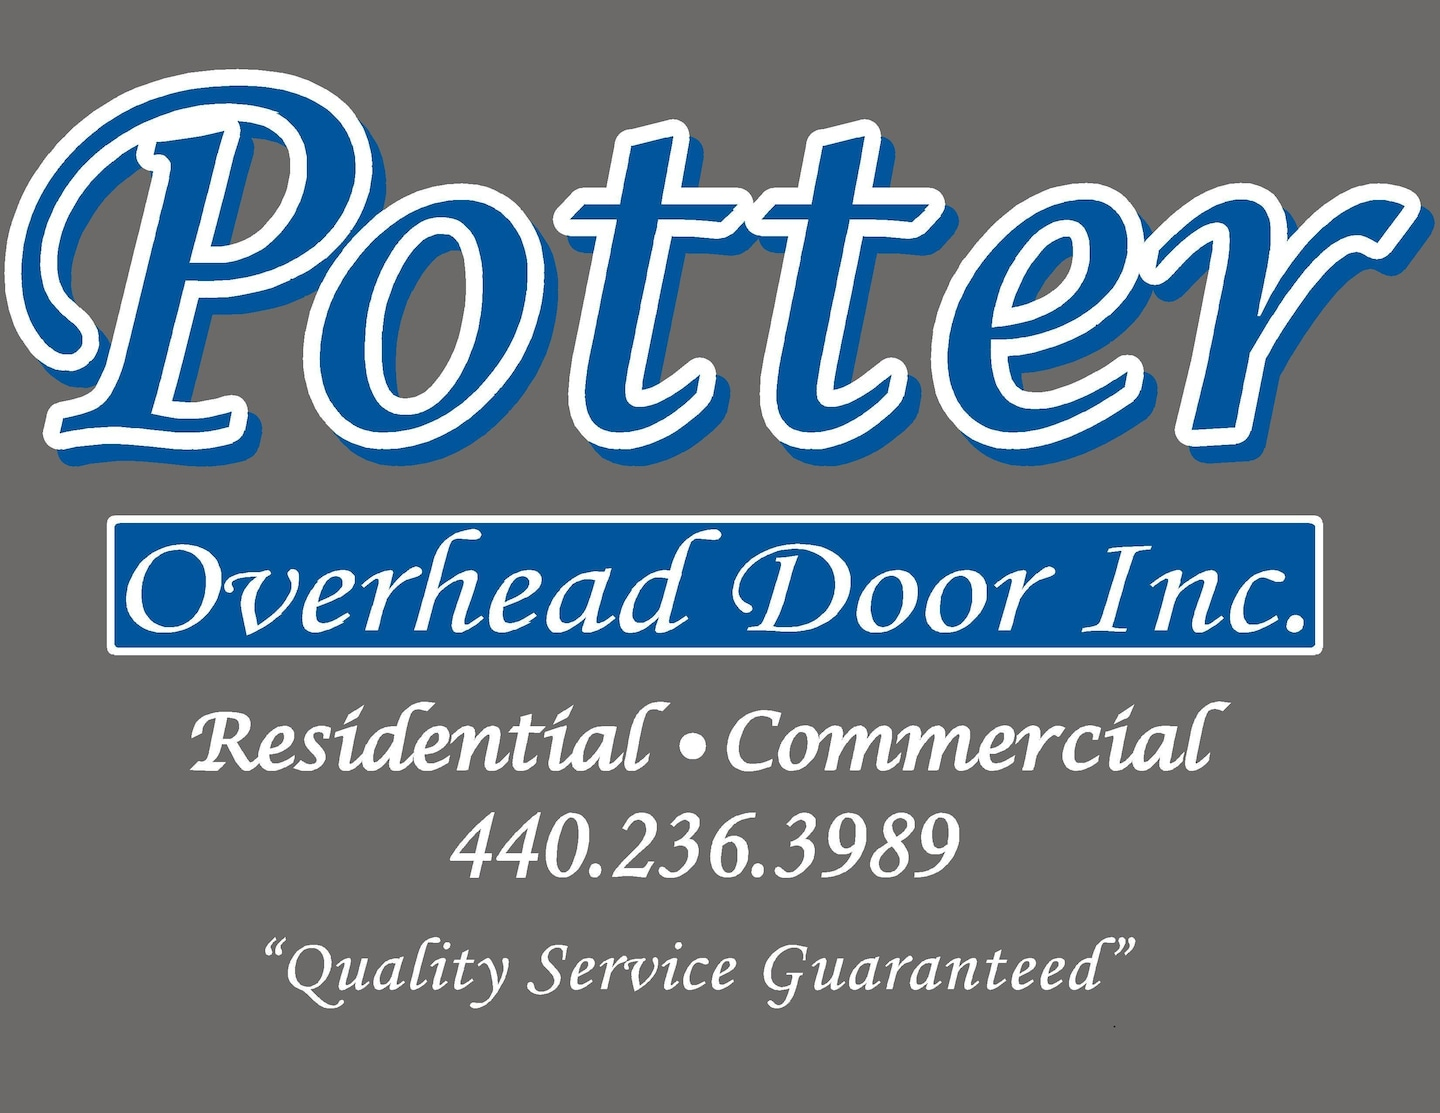 Potter Overhead Door, Inc.